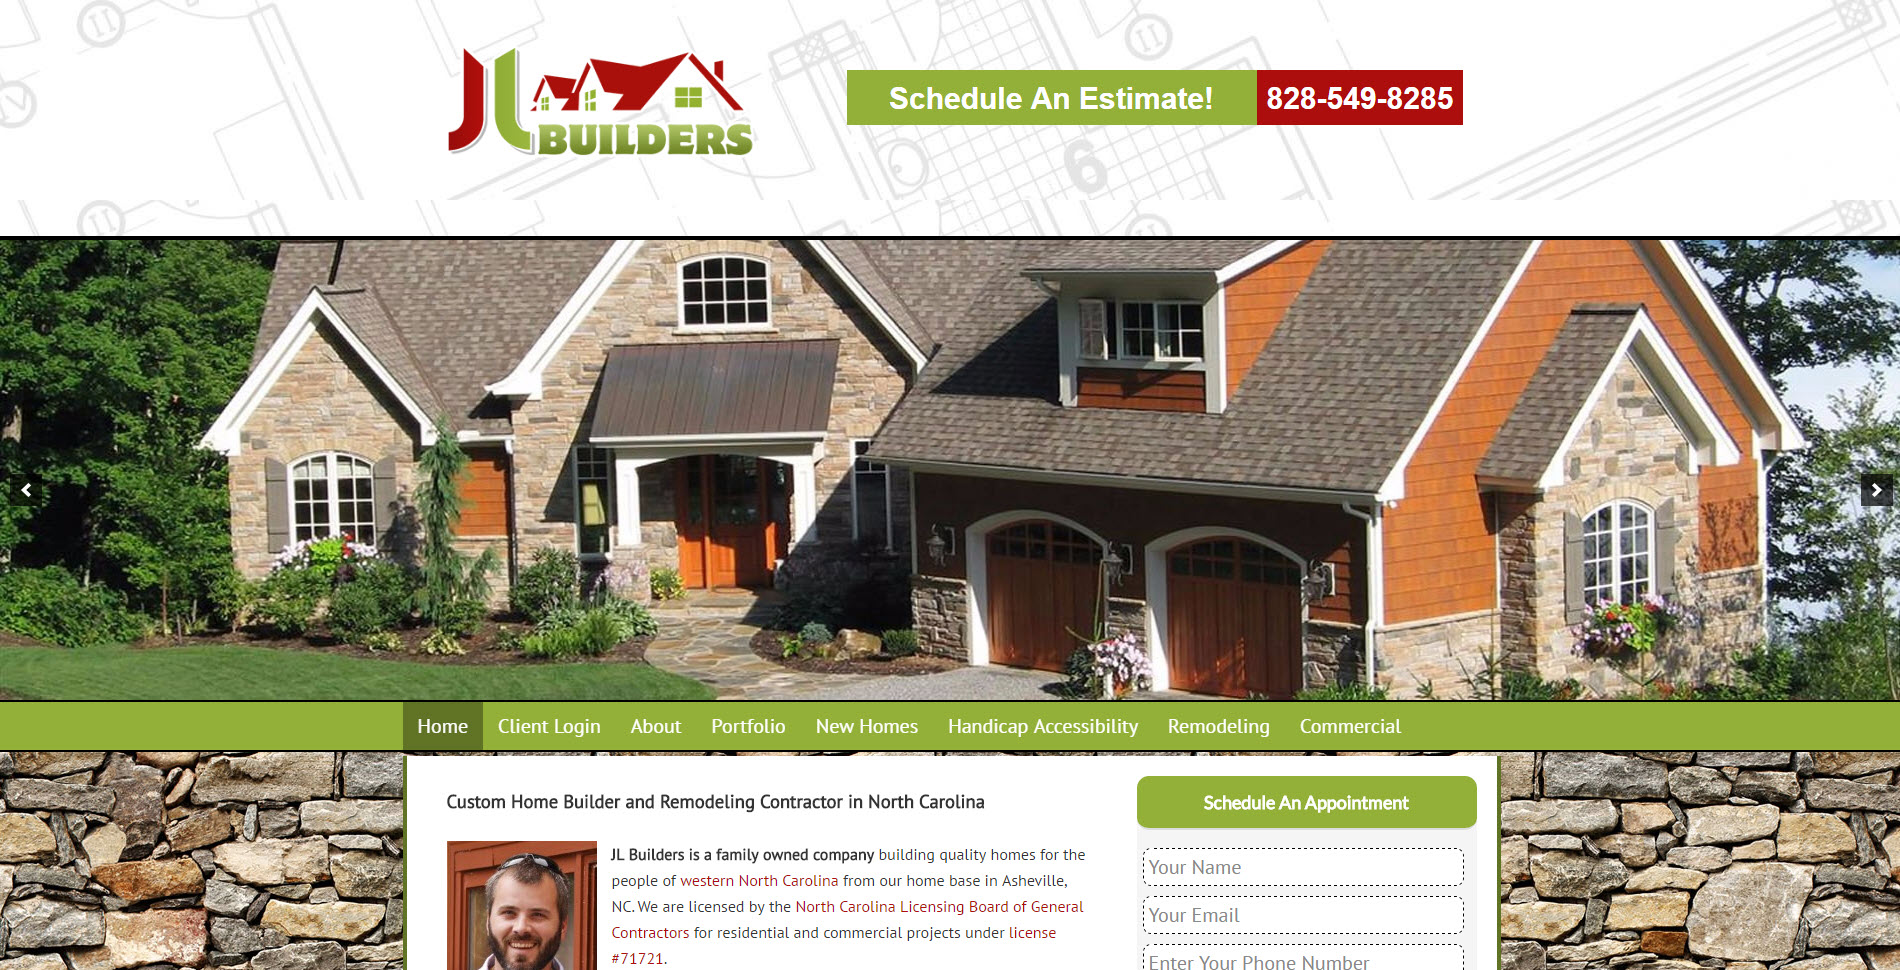 Website Design For Remodelers Plumbers Painters And Roofers